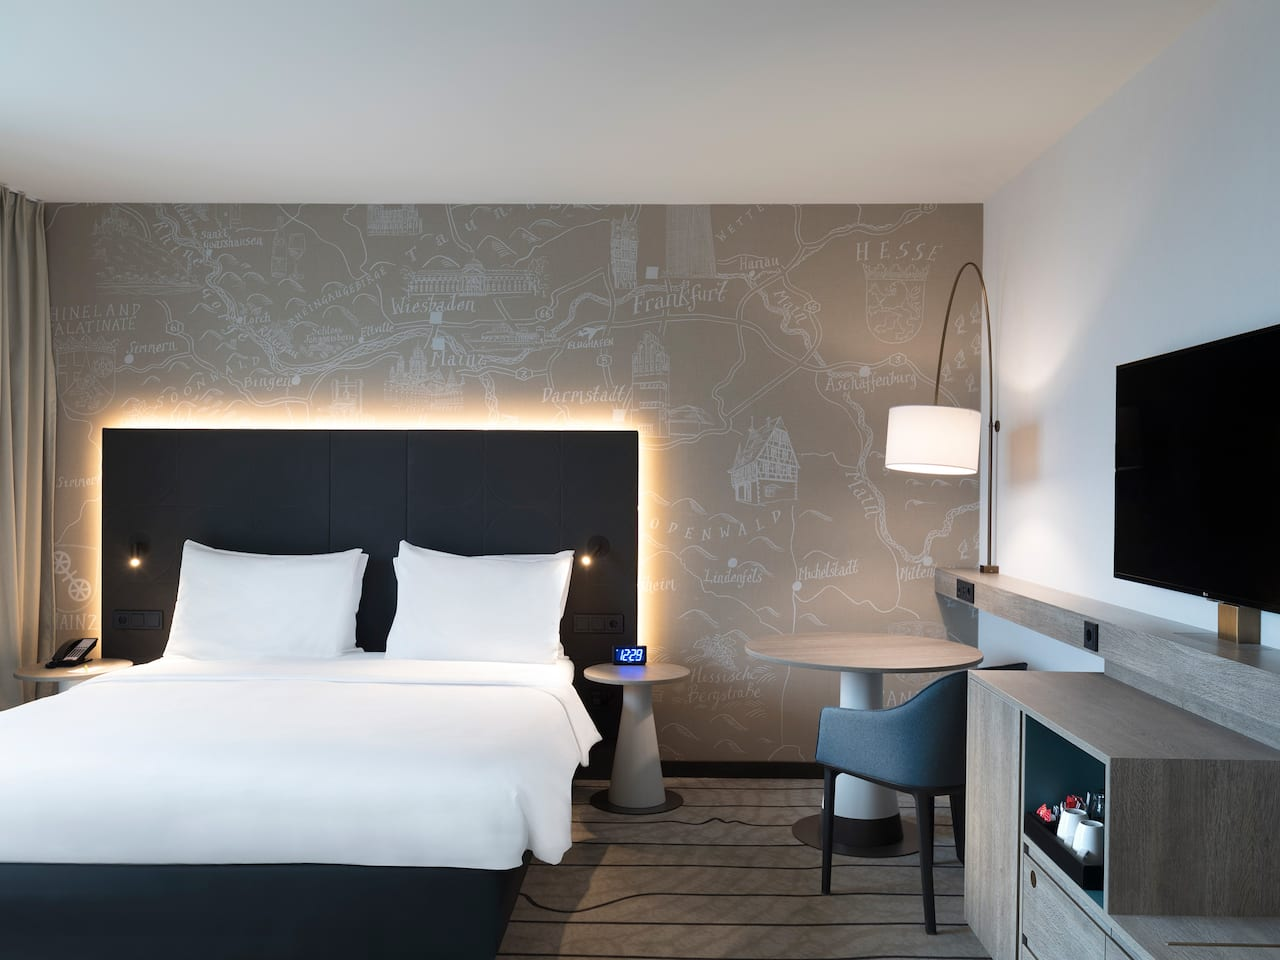 1 standardzimmer roomy room im hyatt place frankfurt airport